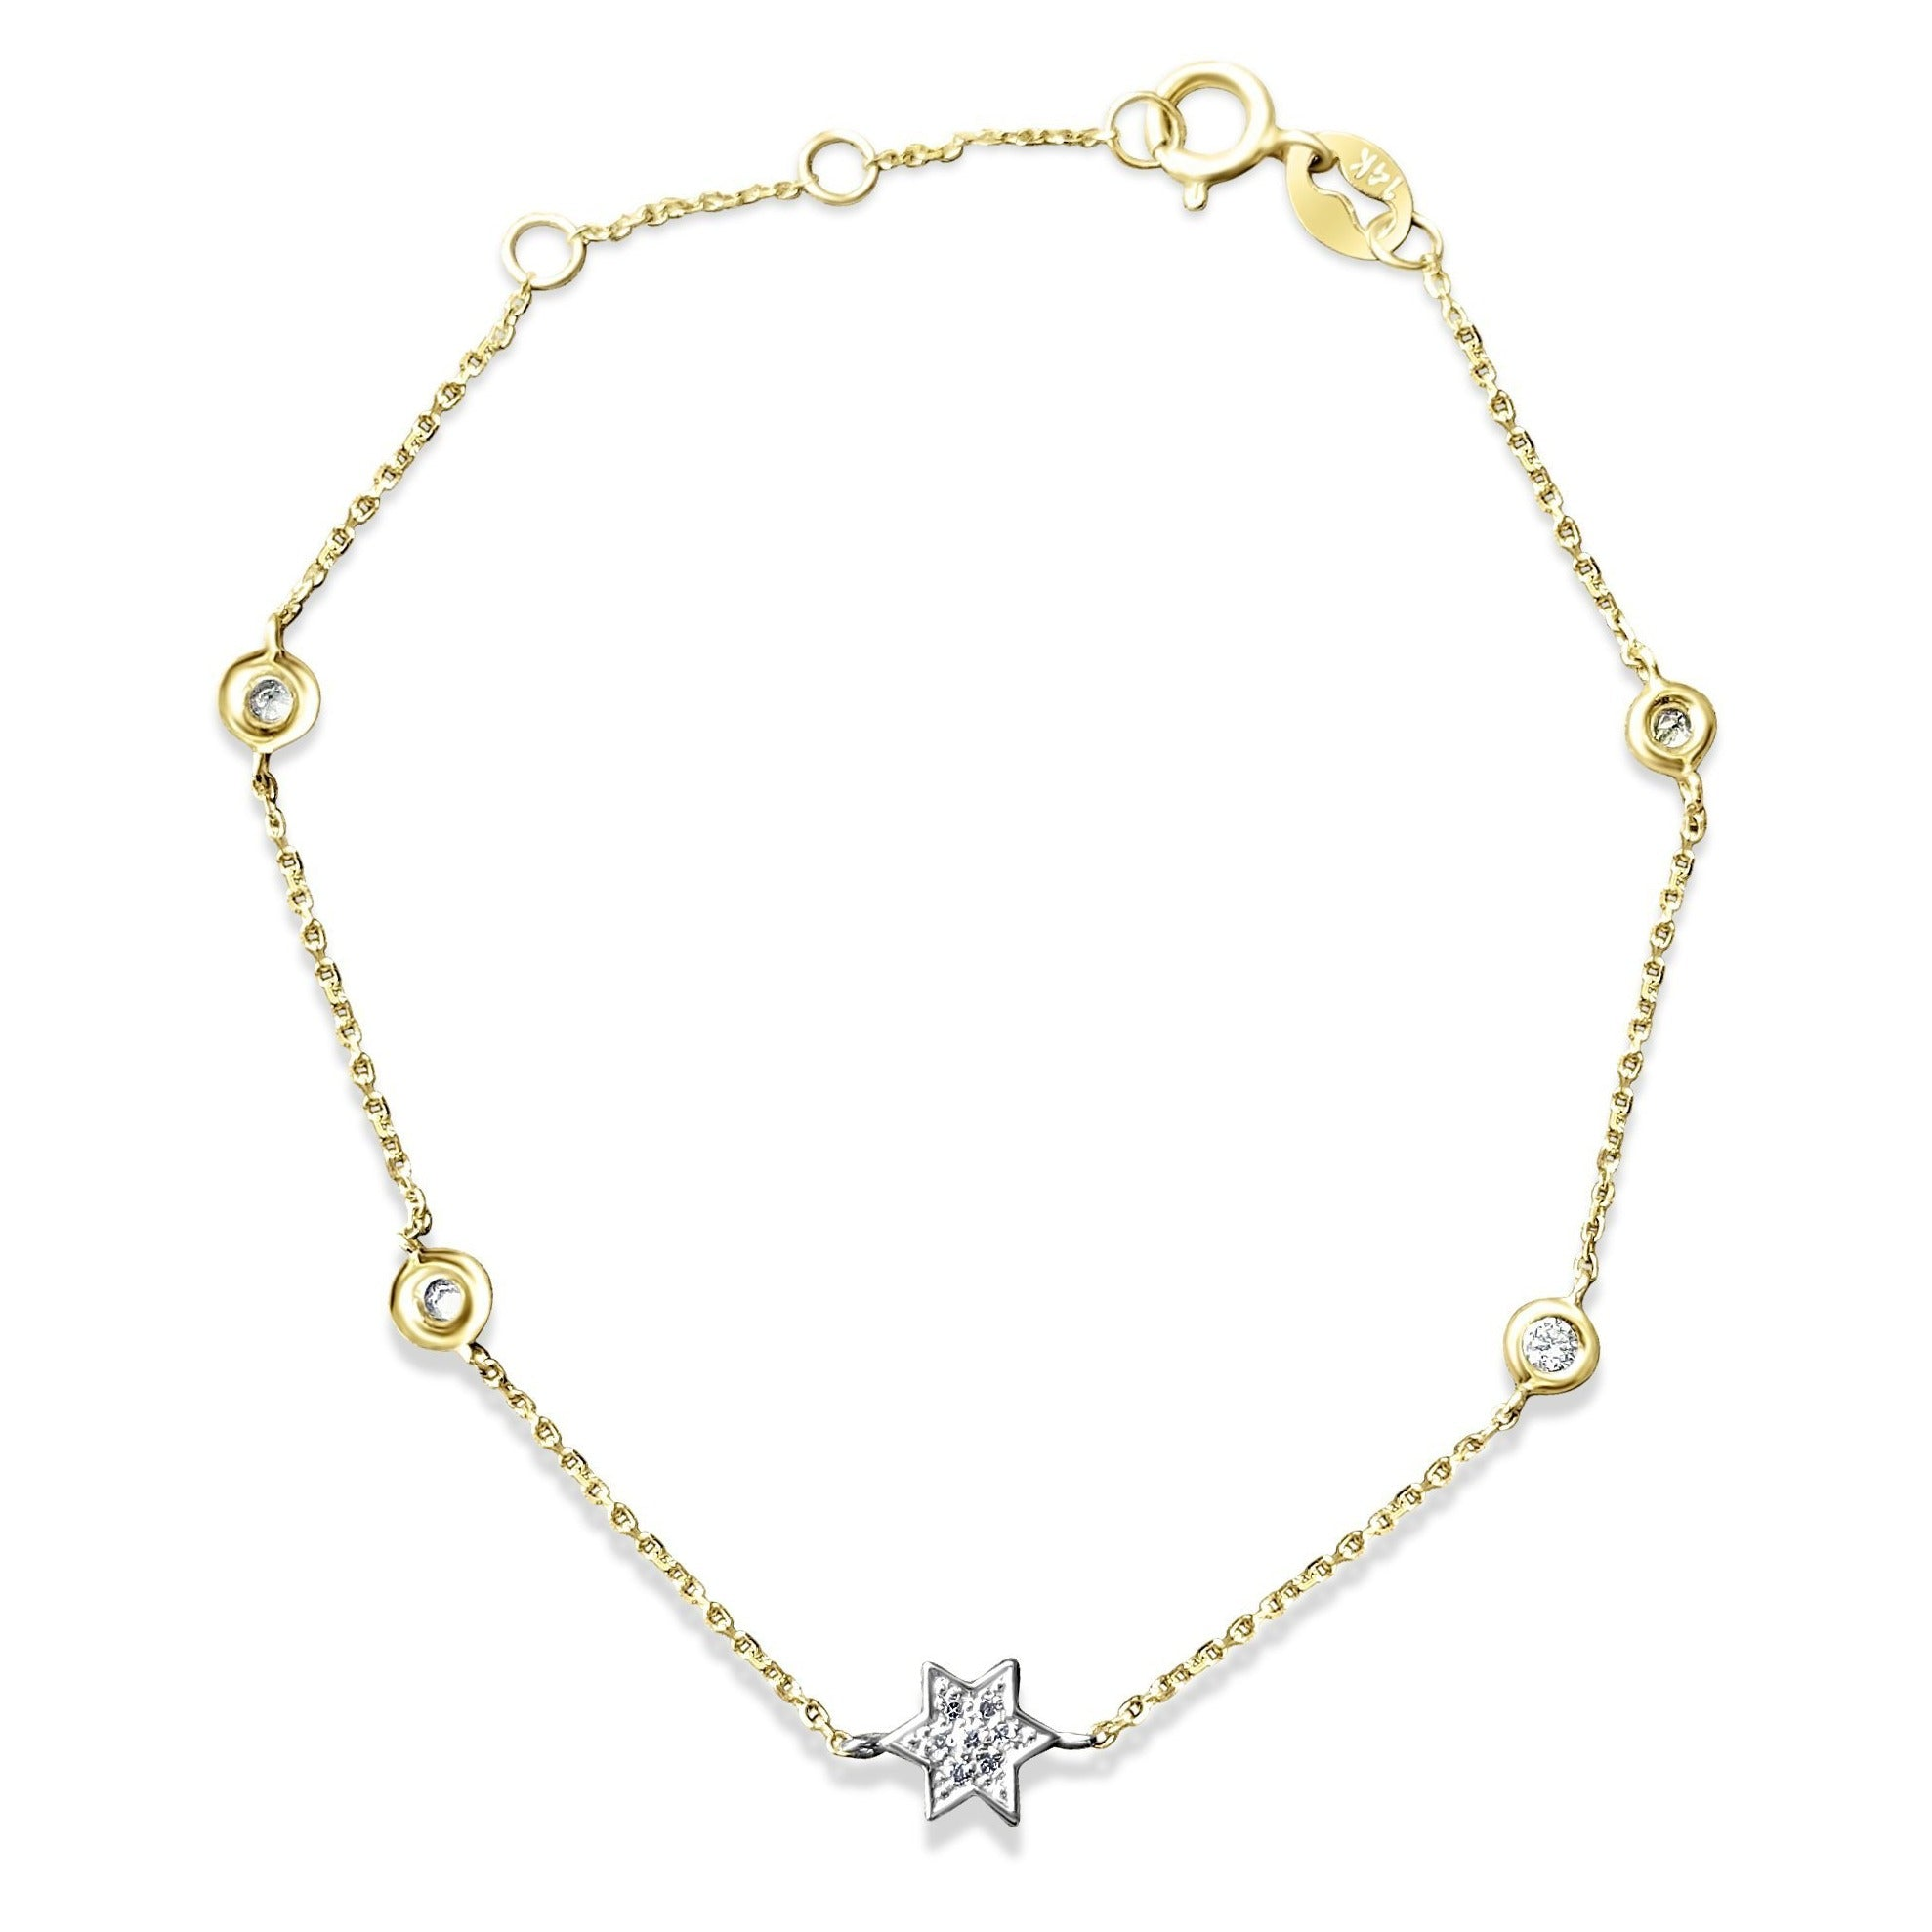 Jewish Star Bracelet With Diamonds